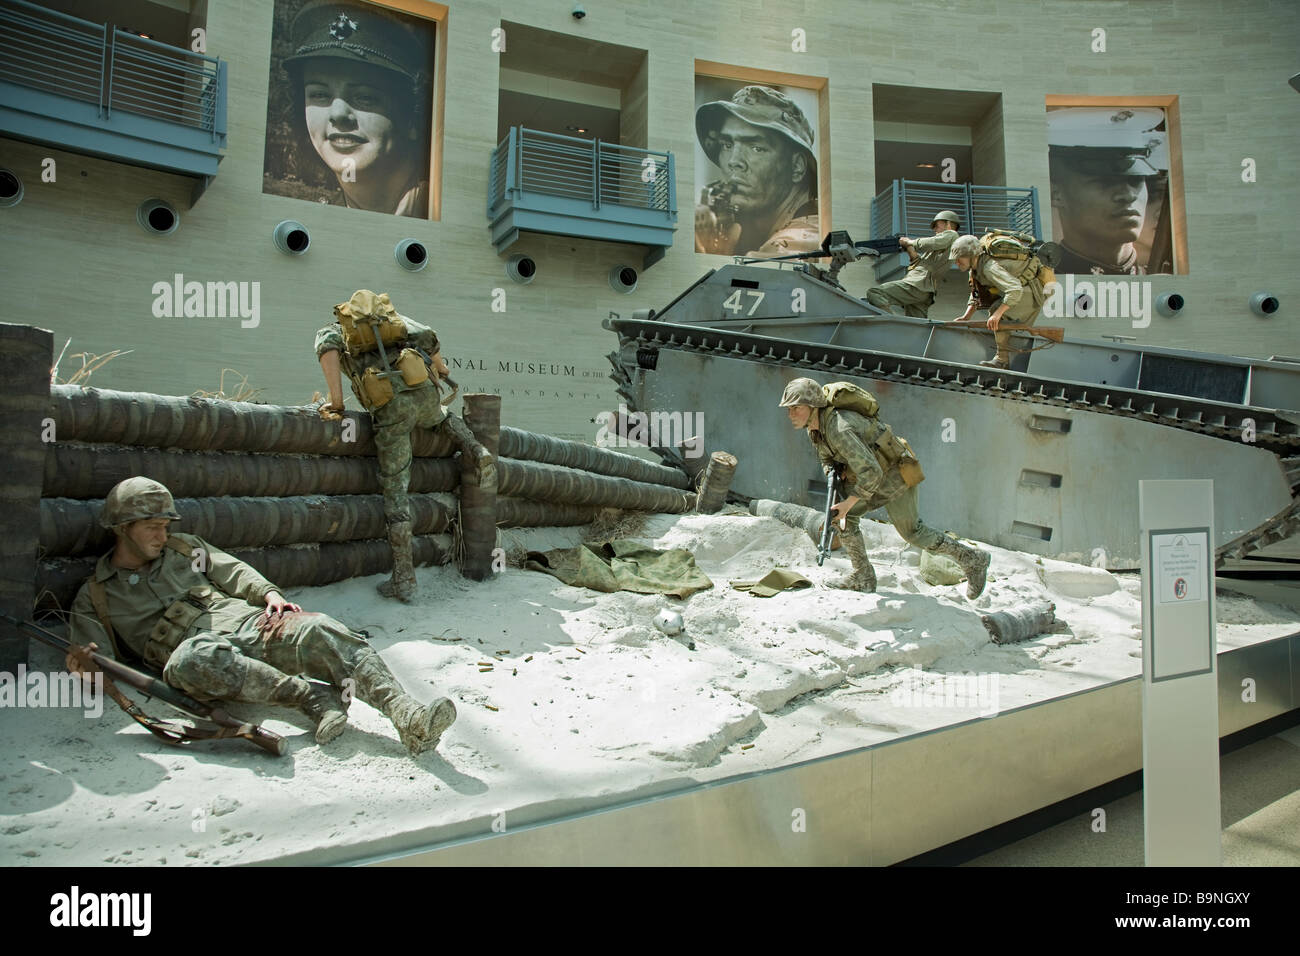 World War II Over the reef at Tarawa display at the Marine Corps National Museum in Quantico VA - Stock Image